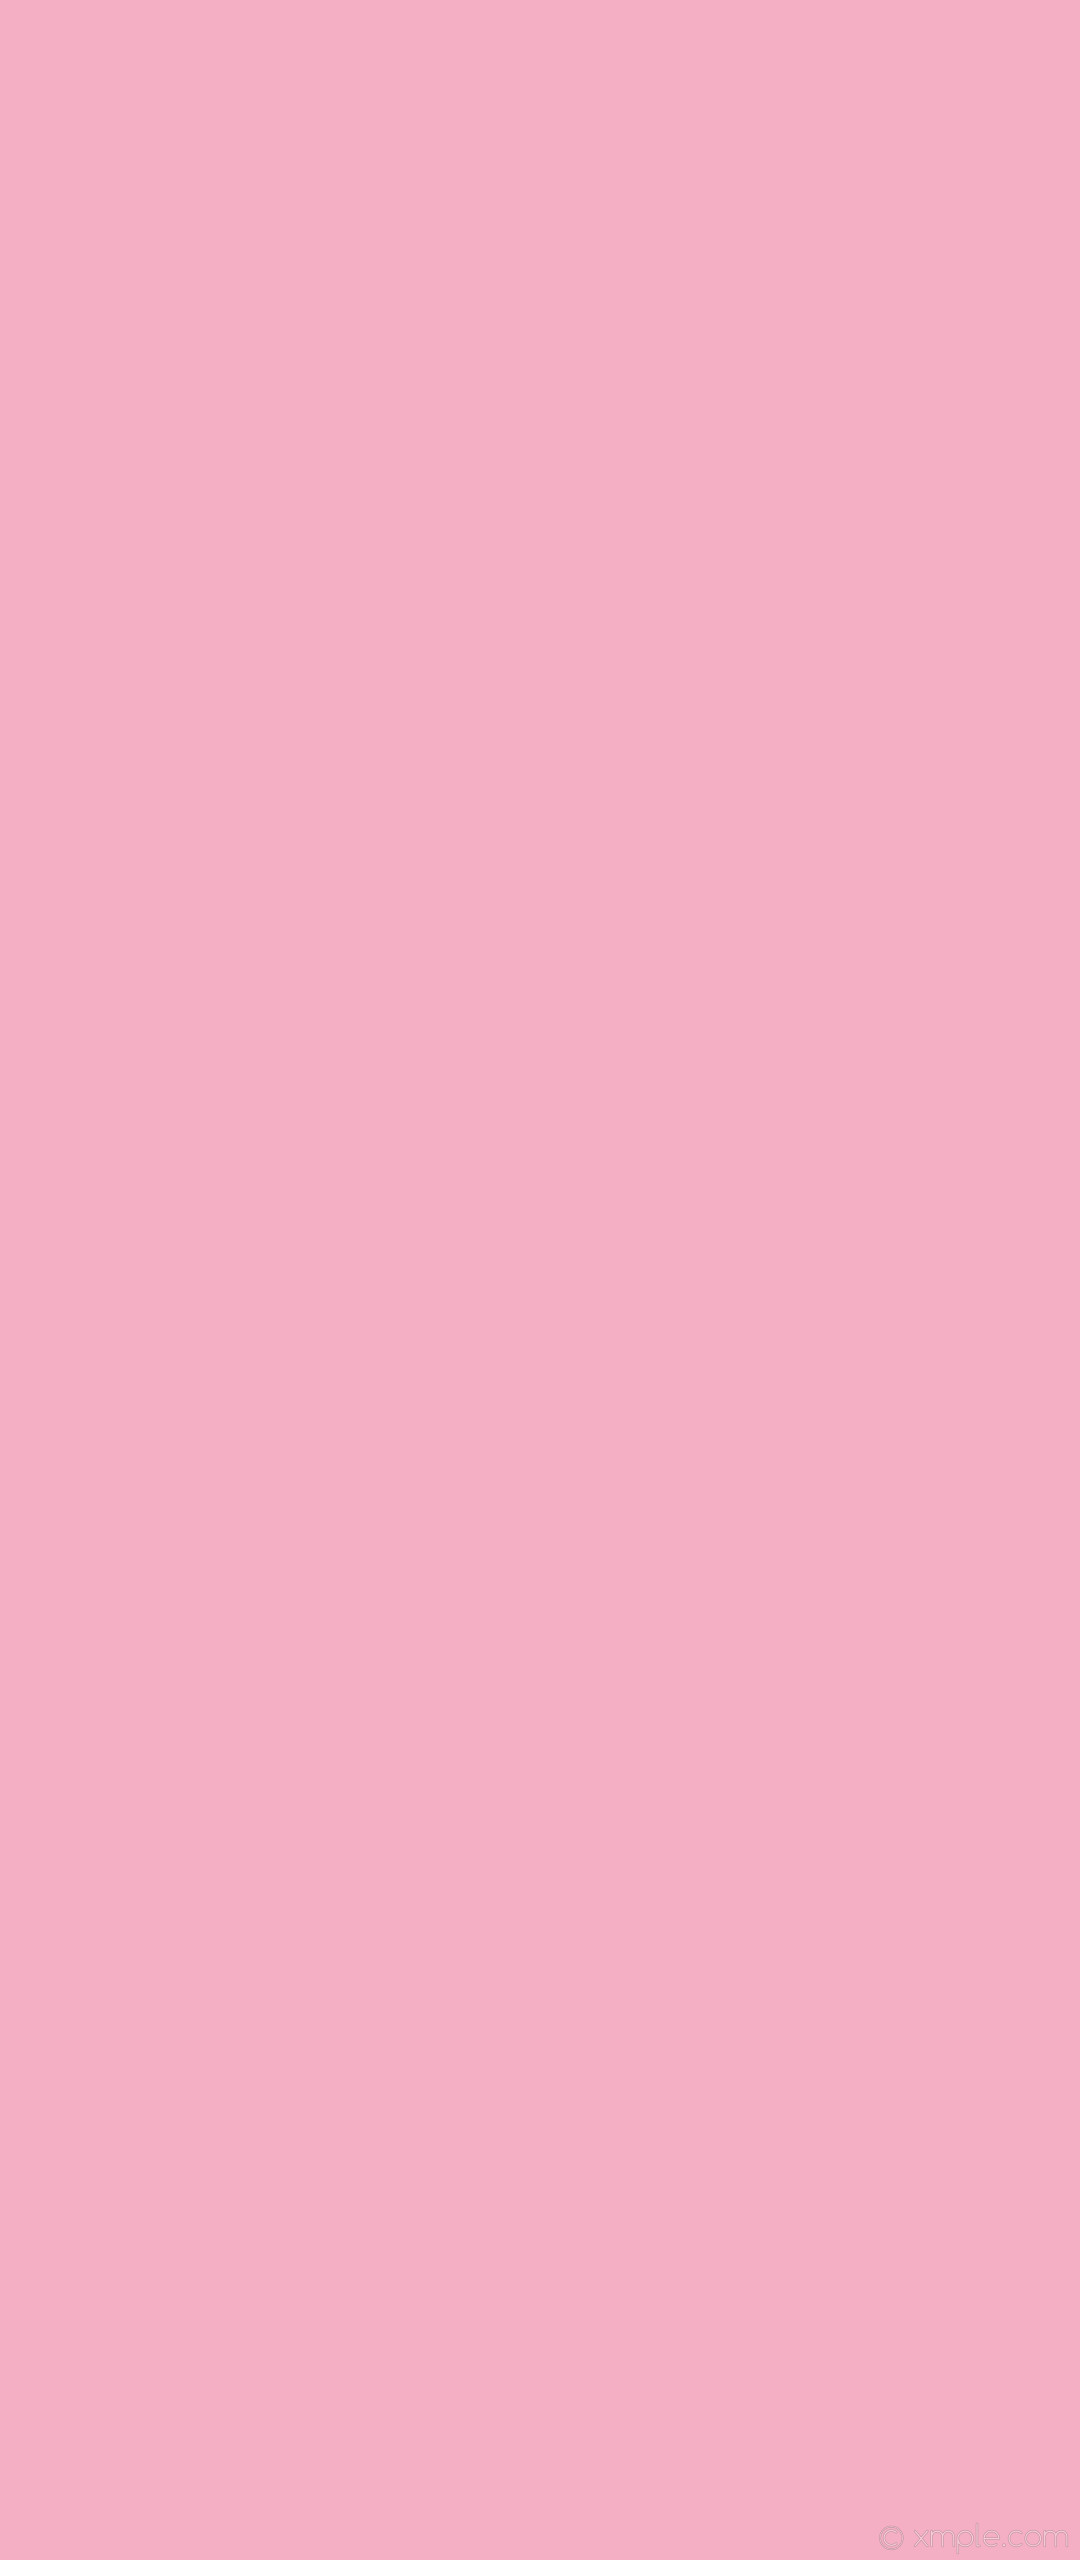 wallpaper pink one colour solid color plain single light pink #f4afc4